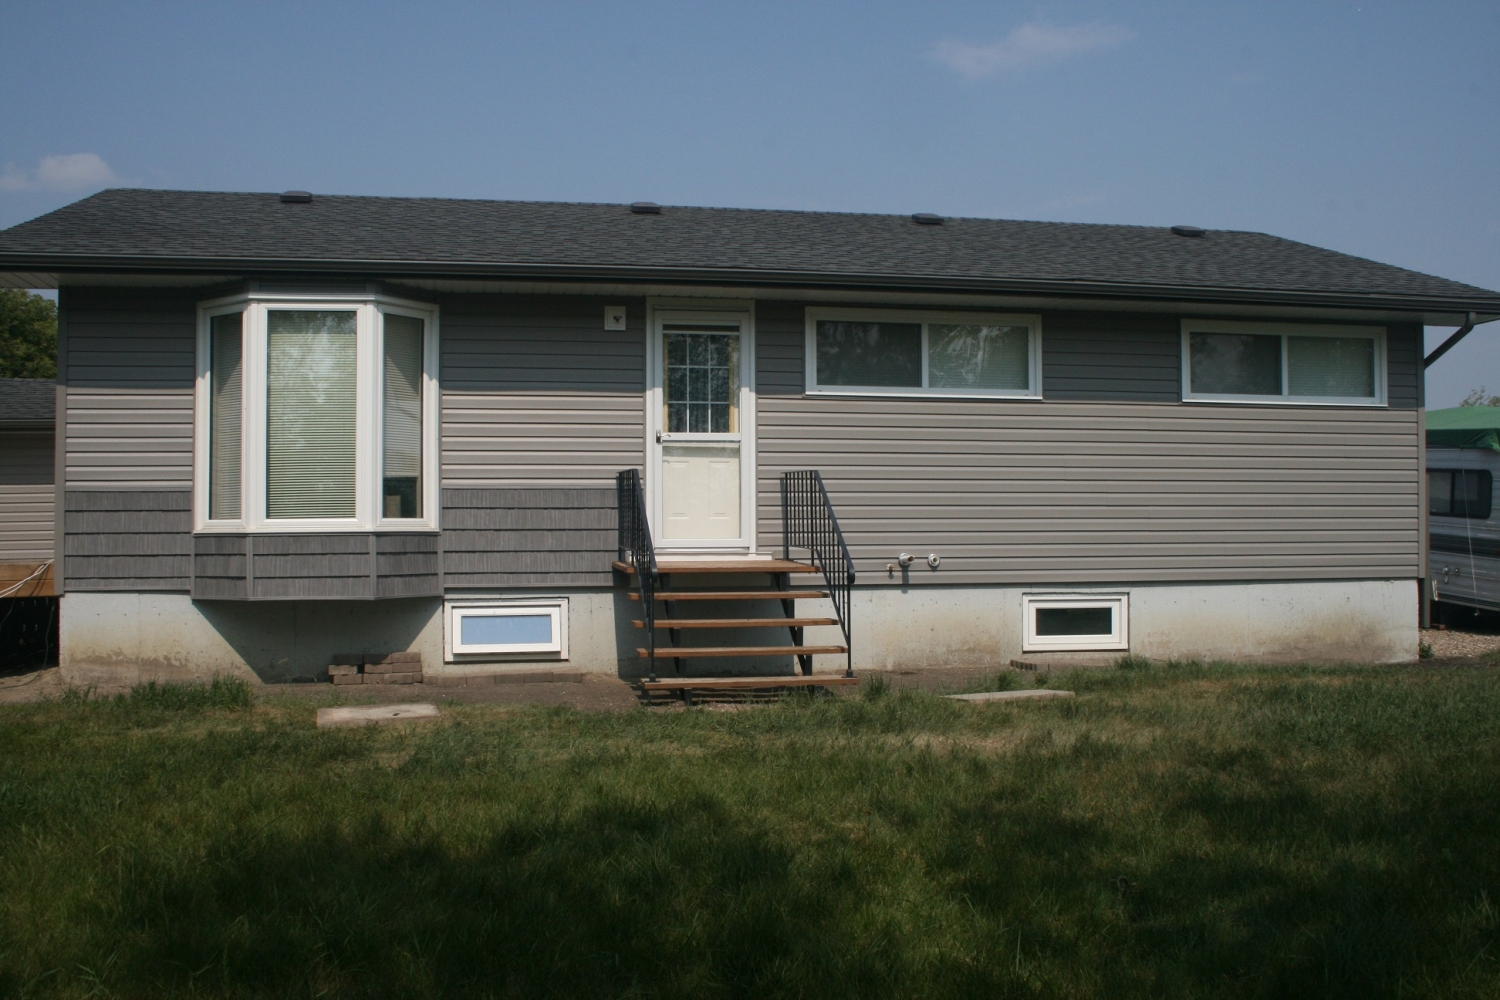 Exterior renovation on a house with hail damage.